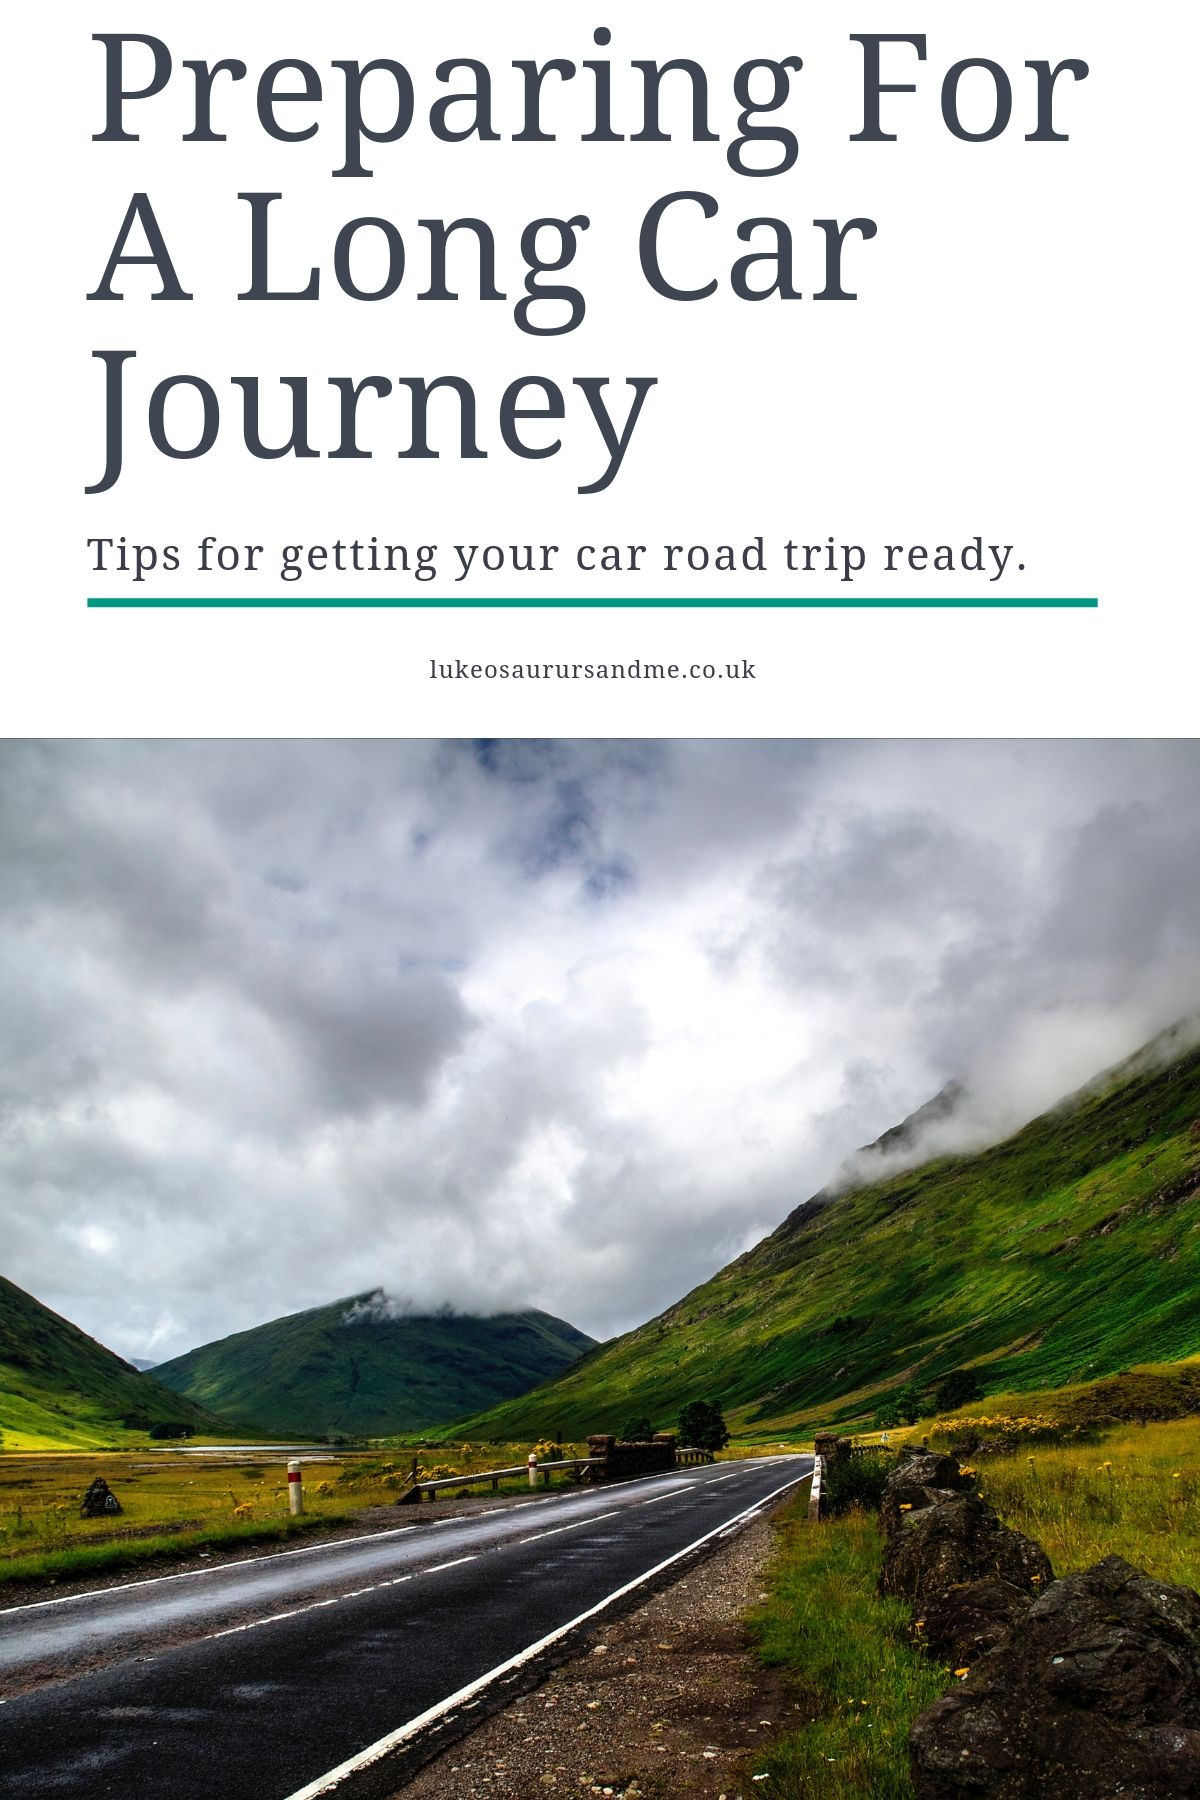 """Dark grey tarmac road cutting through a leafy green mountain pass with clouds covering the peaks. Blog title says, """"Preparing for a long car journey - tips for getting your car road trip ready."""""""